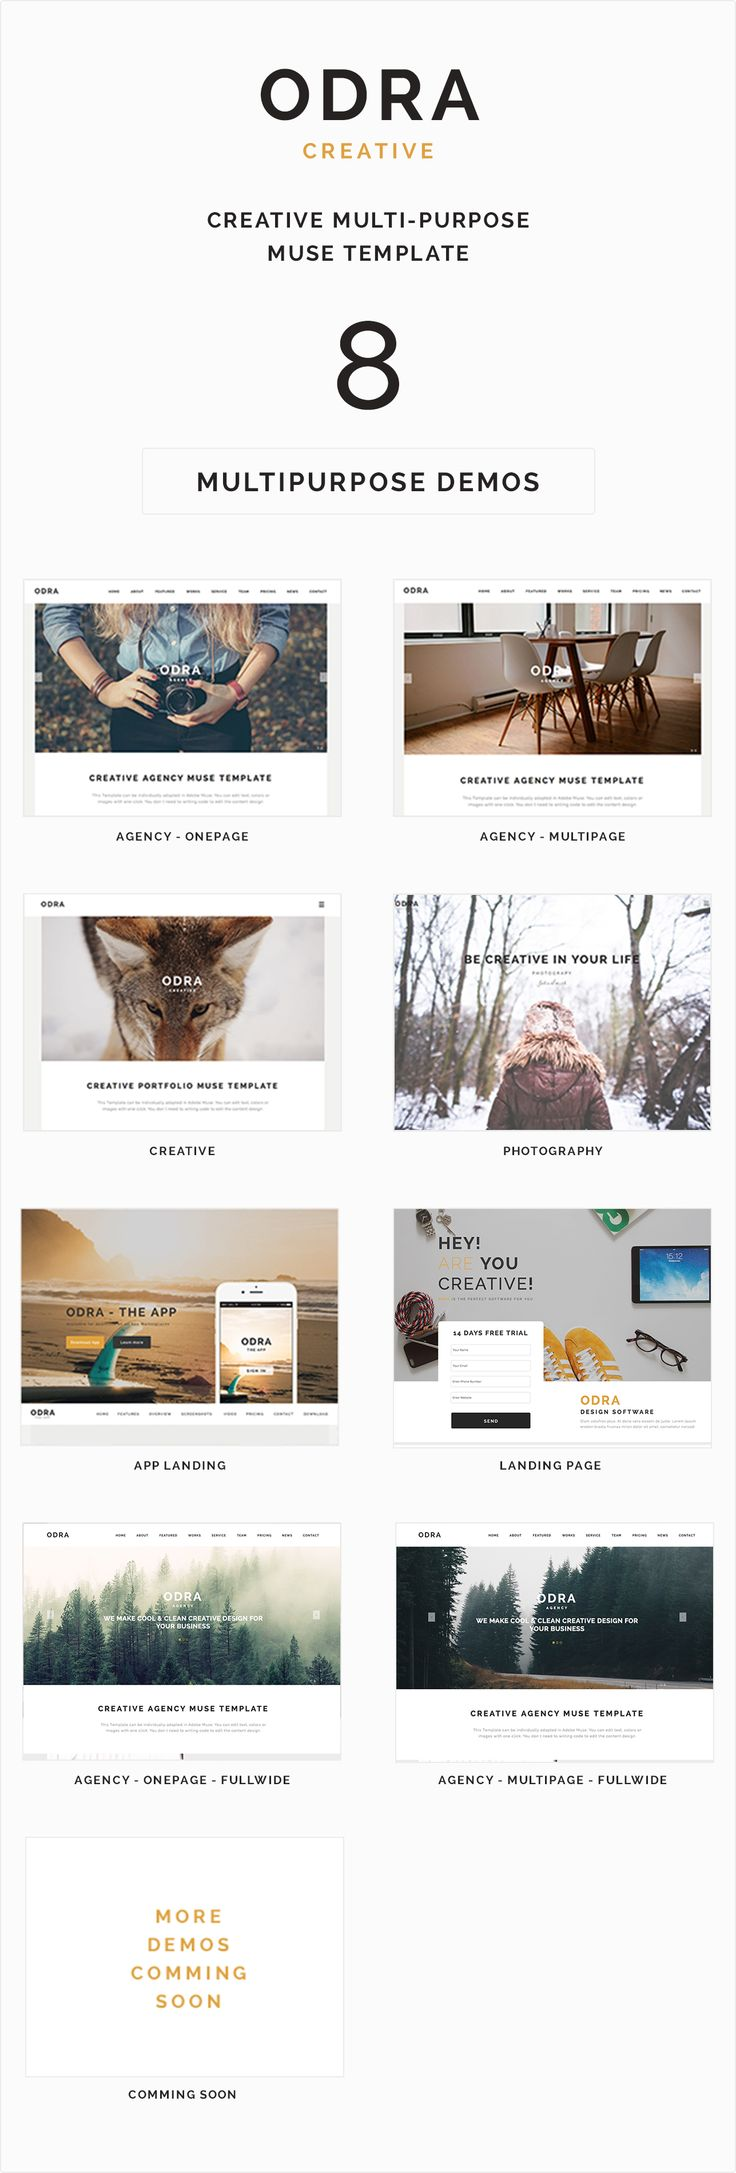 34 best adobe muse templates images on pinterest adobe muse muse templates odra creative multi purpose muse template themeforest pronofoot35fo Images